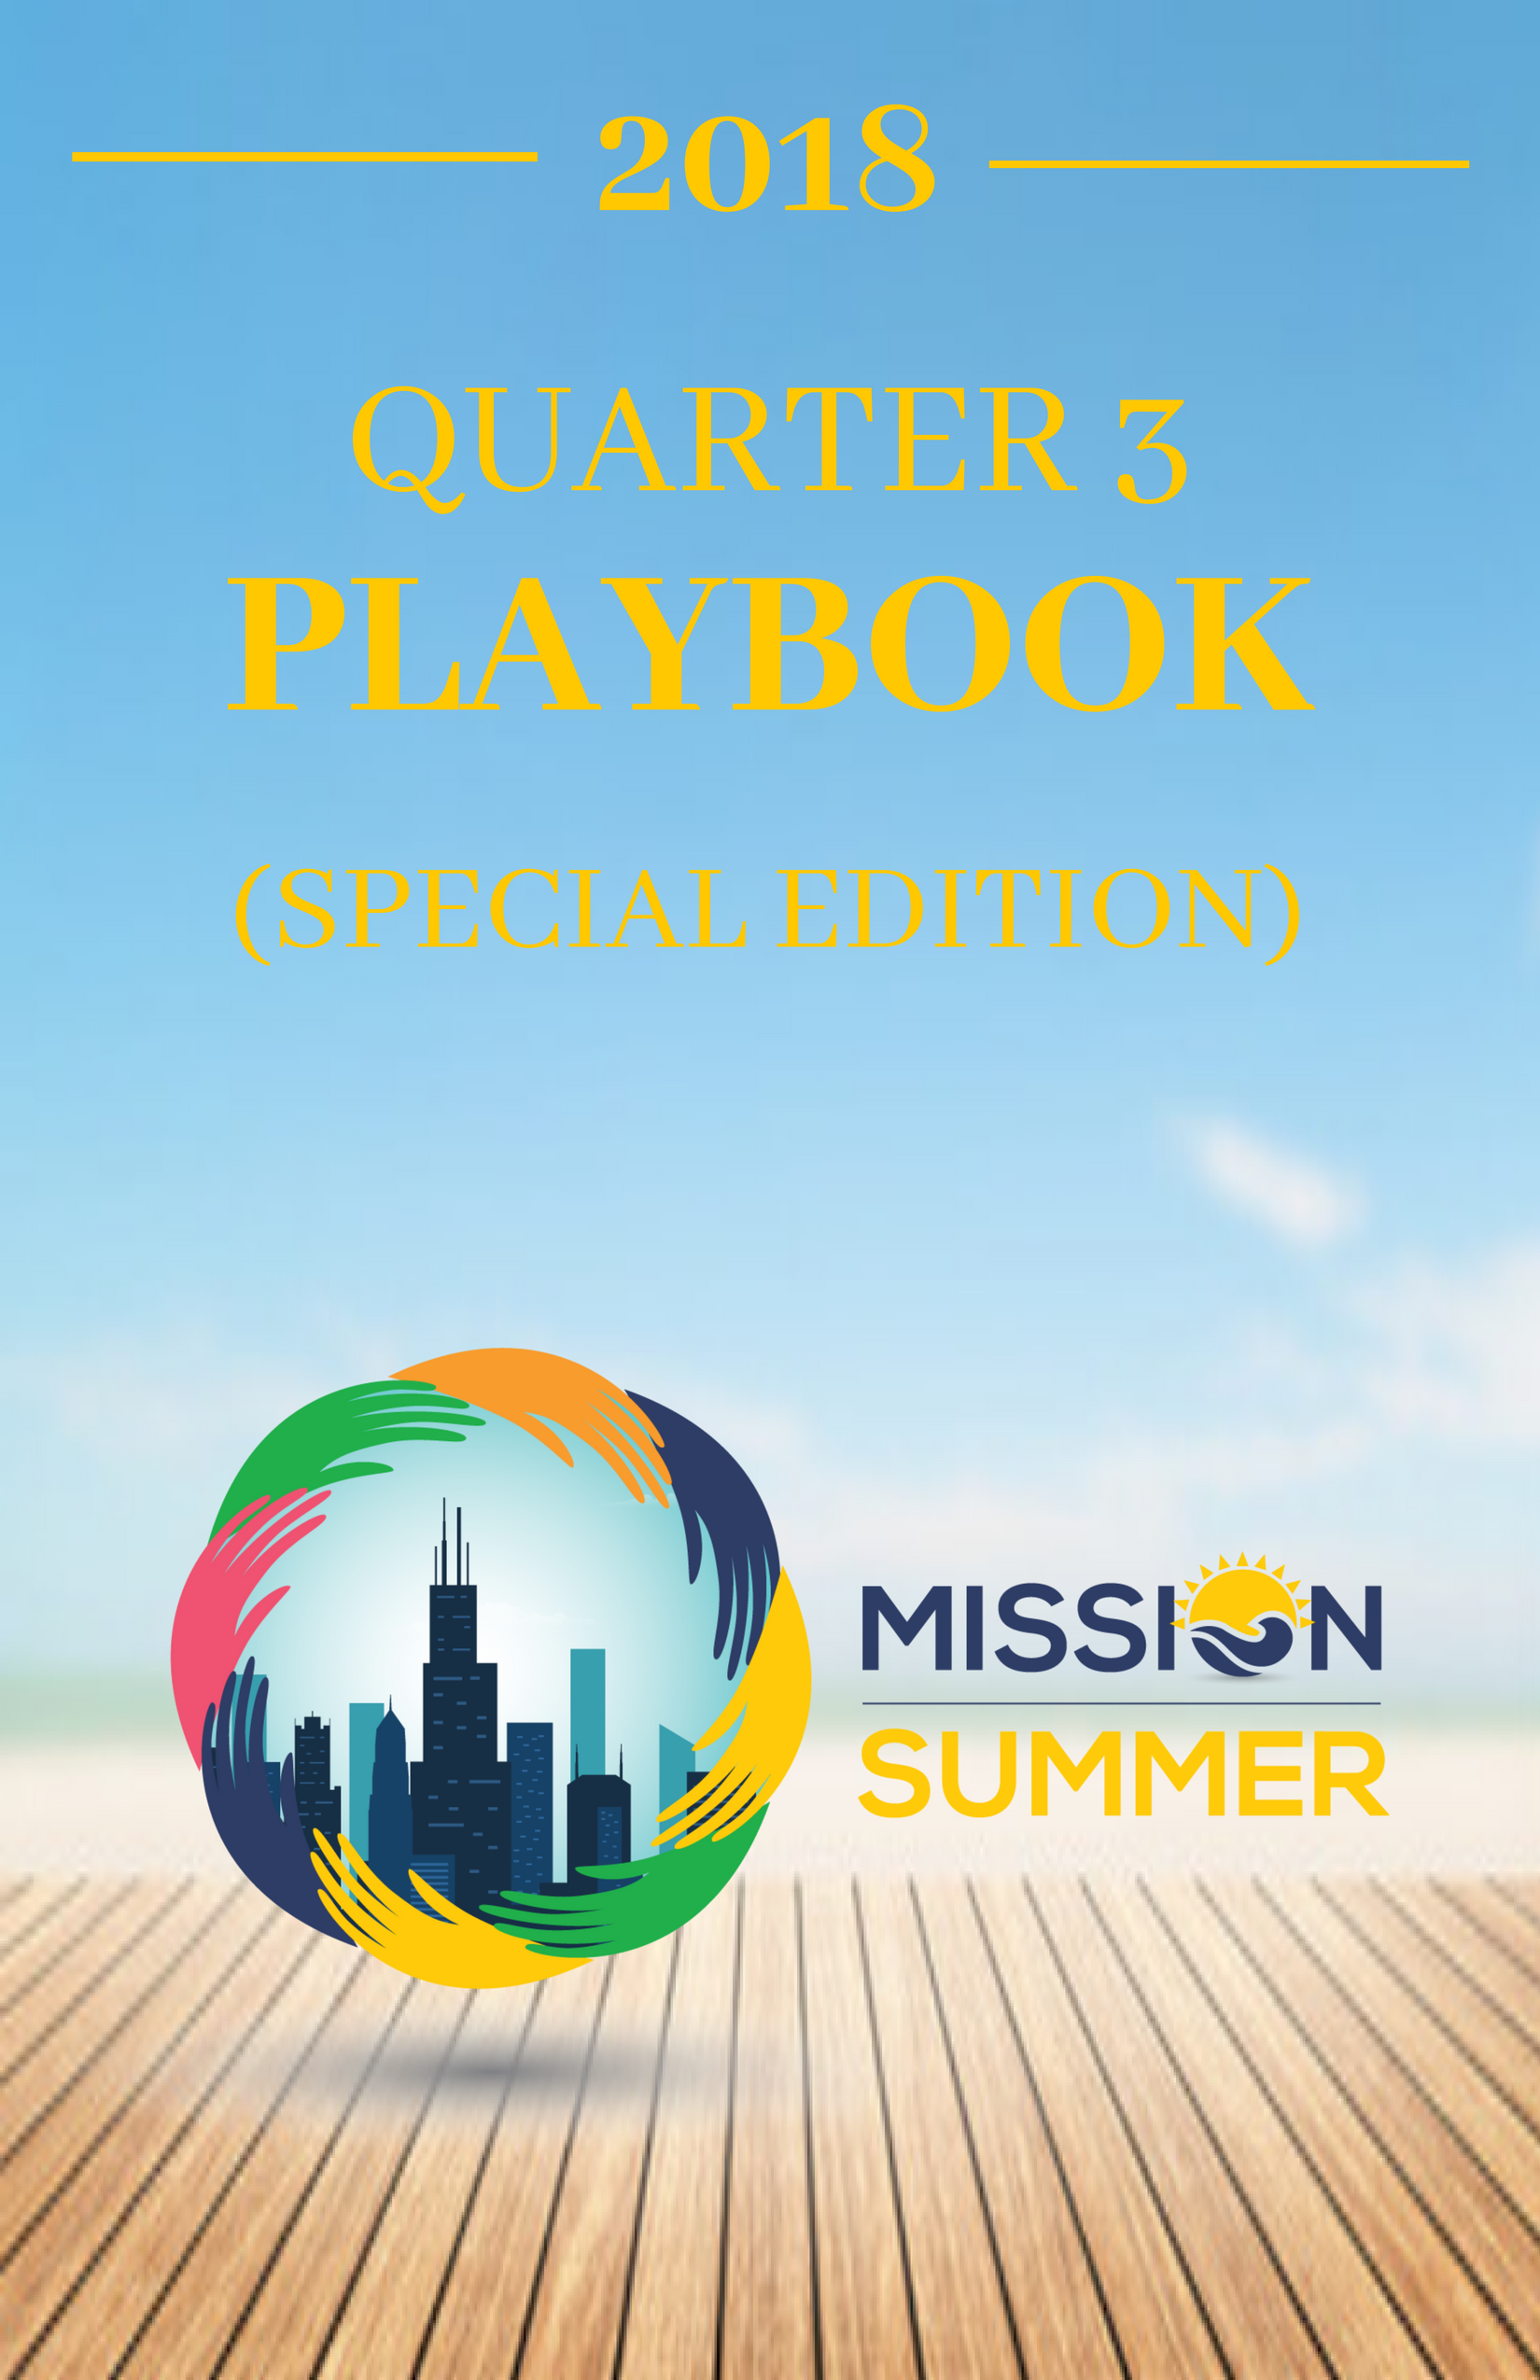 Get in the Know - Every quarter we print a Playbook that includes all of the important dates and upcoming events for Chicago Embassy Church.